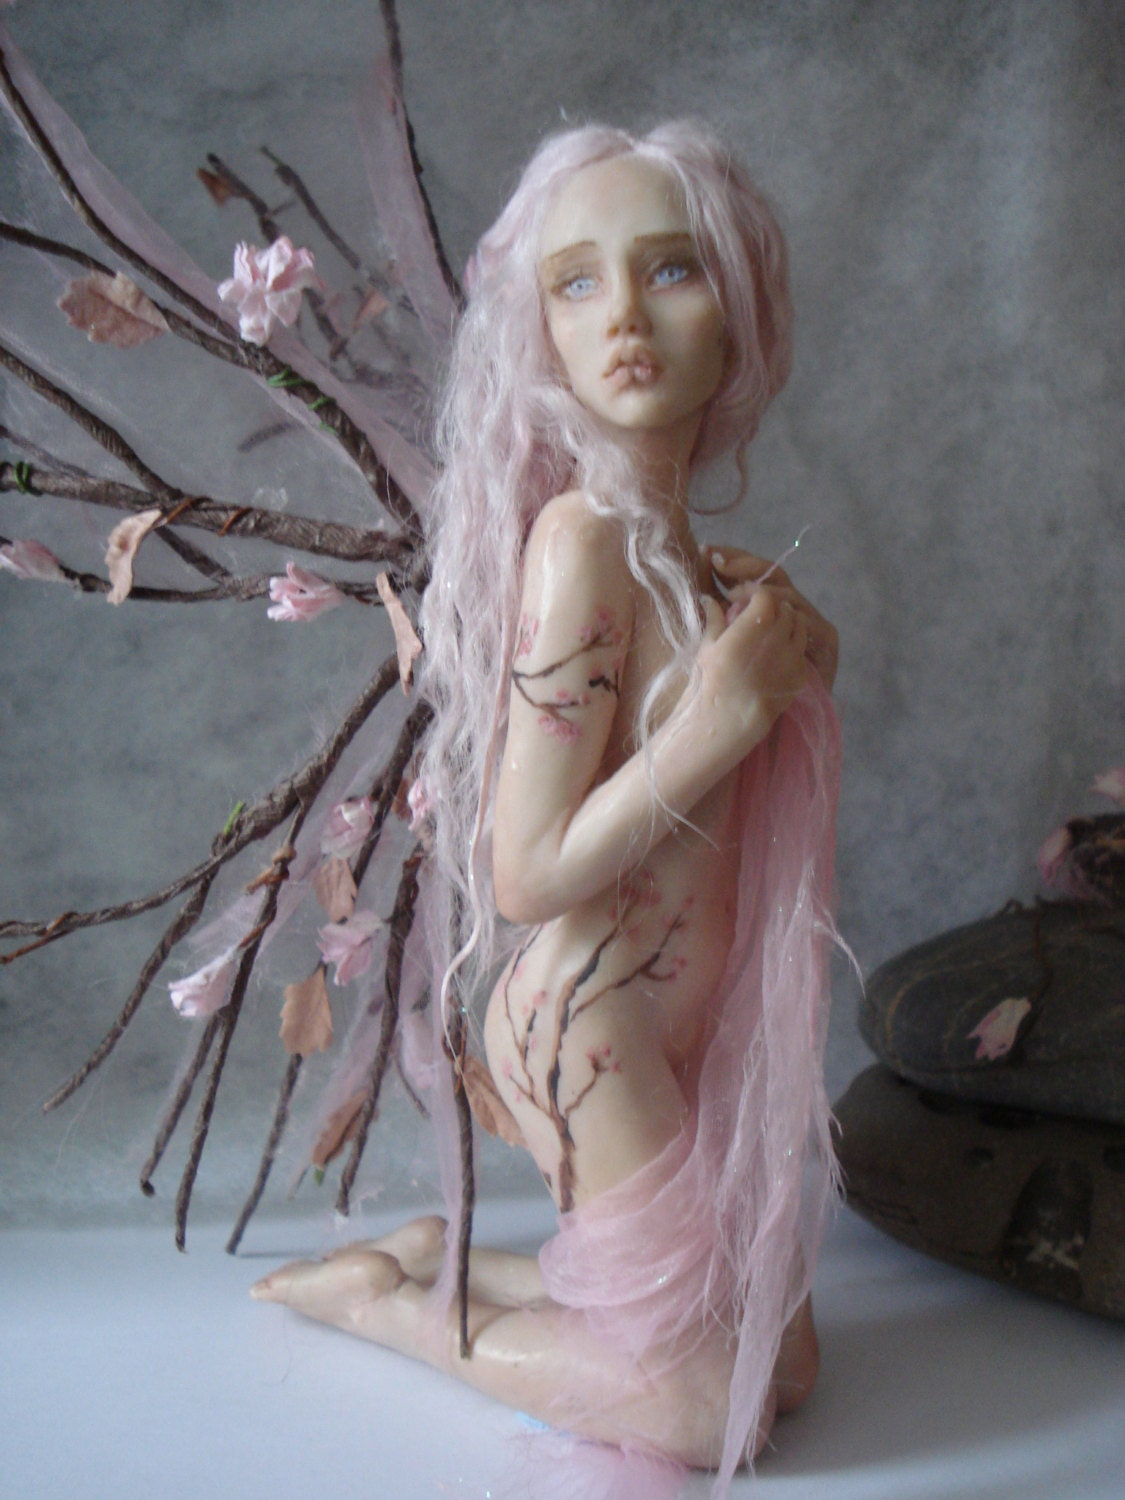 SHADOWSCULPT OOAK FAIRY commission one of a kind sculpture art doll fantasy figurine made to order - shadowsculpt